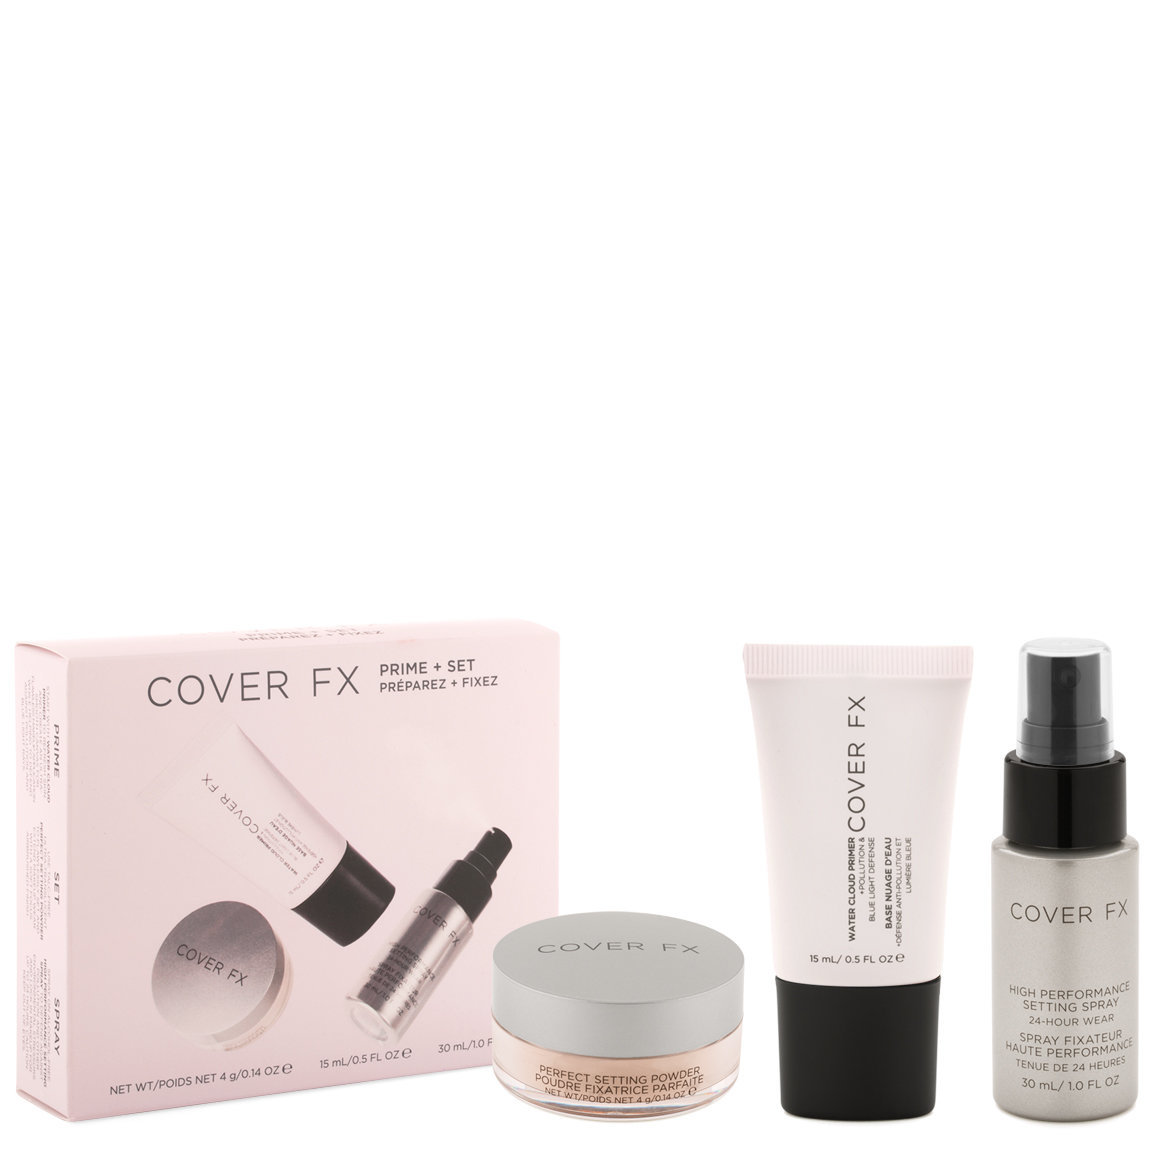 COVER | FX Prime + Set Complexion Kit product smear.